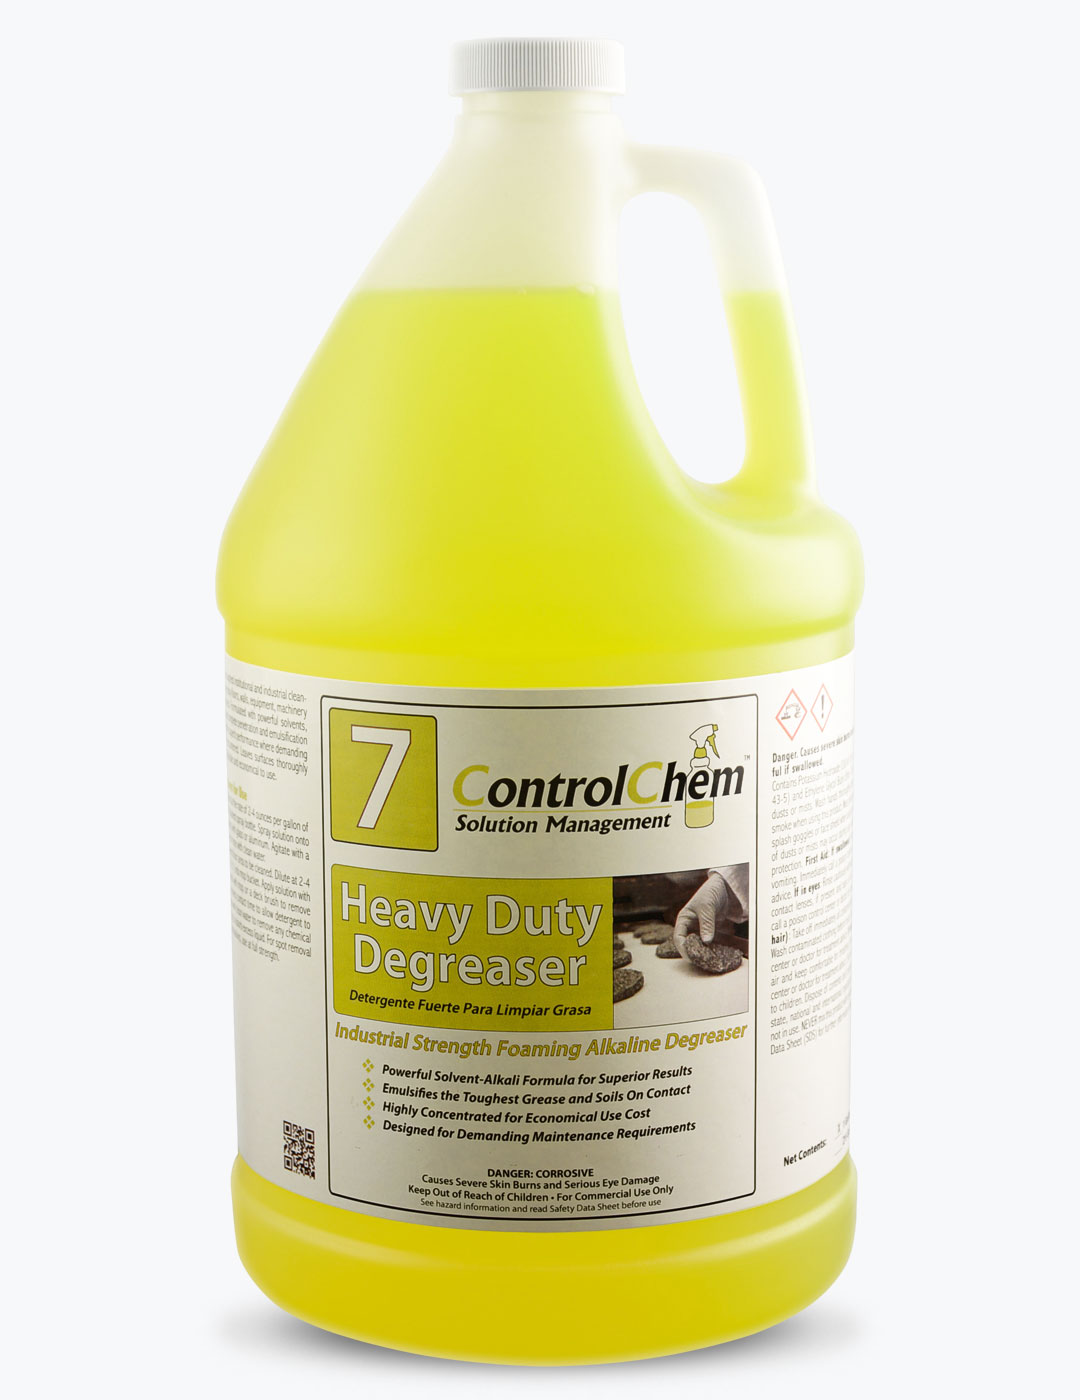 ControlChem  #7 Heavy Duty Degreaser